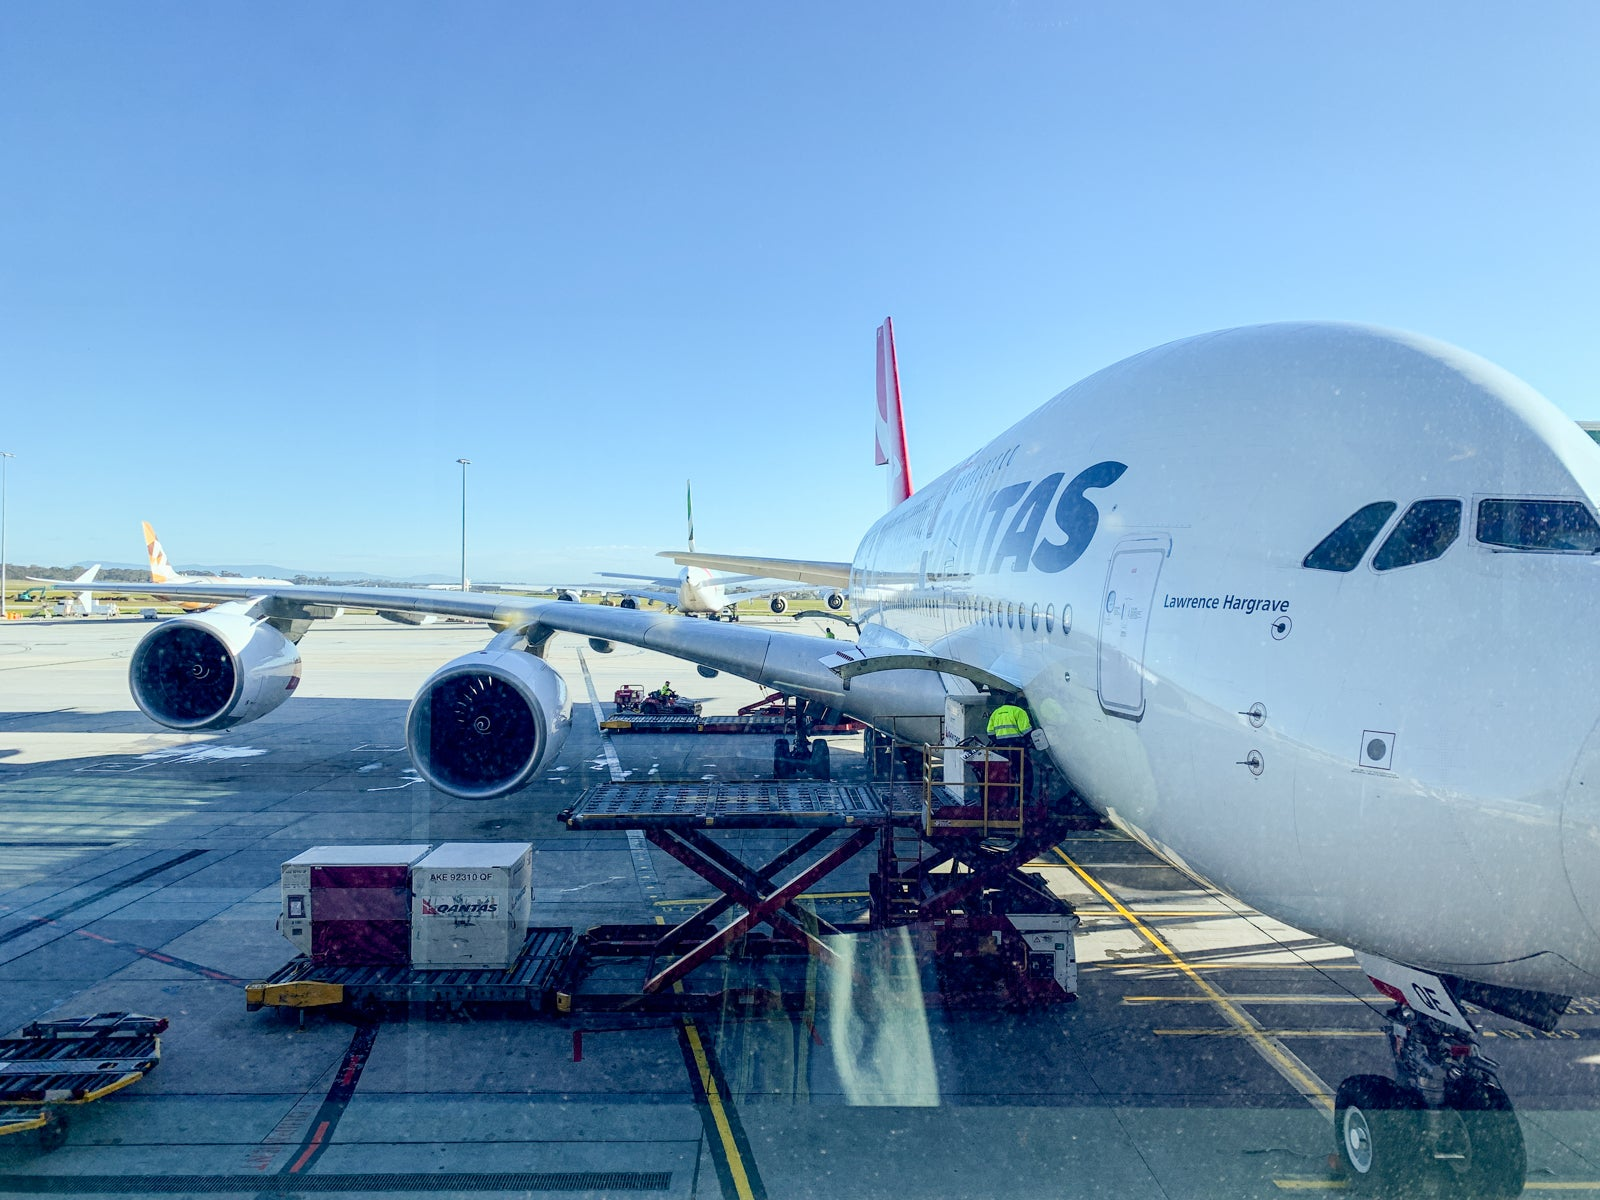 Qantas planning to send its entire fleet of A380 jets back into service - The Points Guy